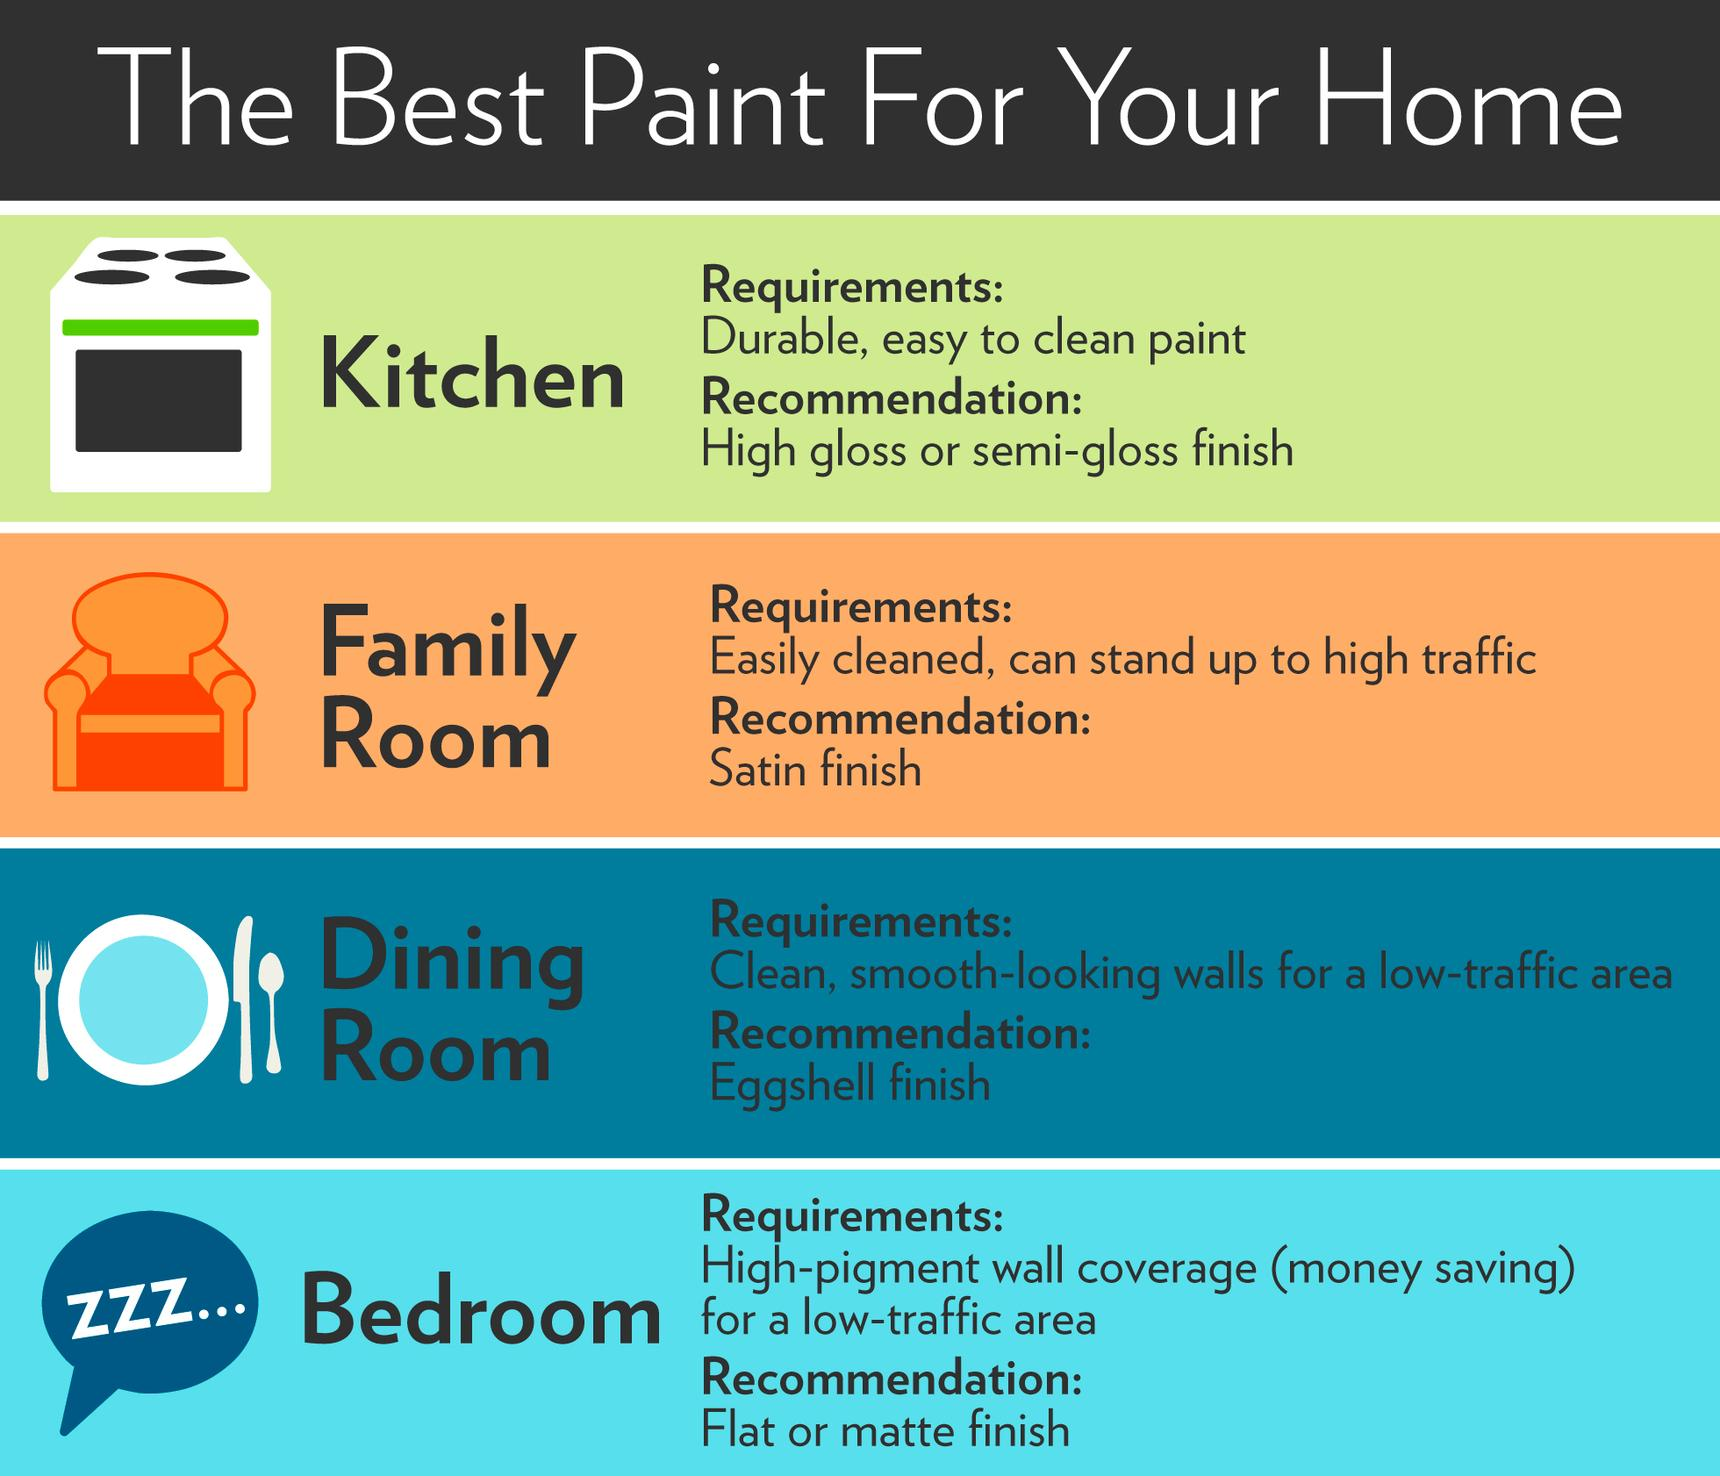 durable-paint-colors-for-your-new-home-remodel-westfield-clark-avenel-edison-piscataway-nj